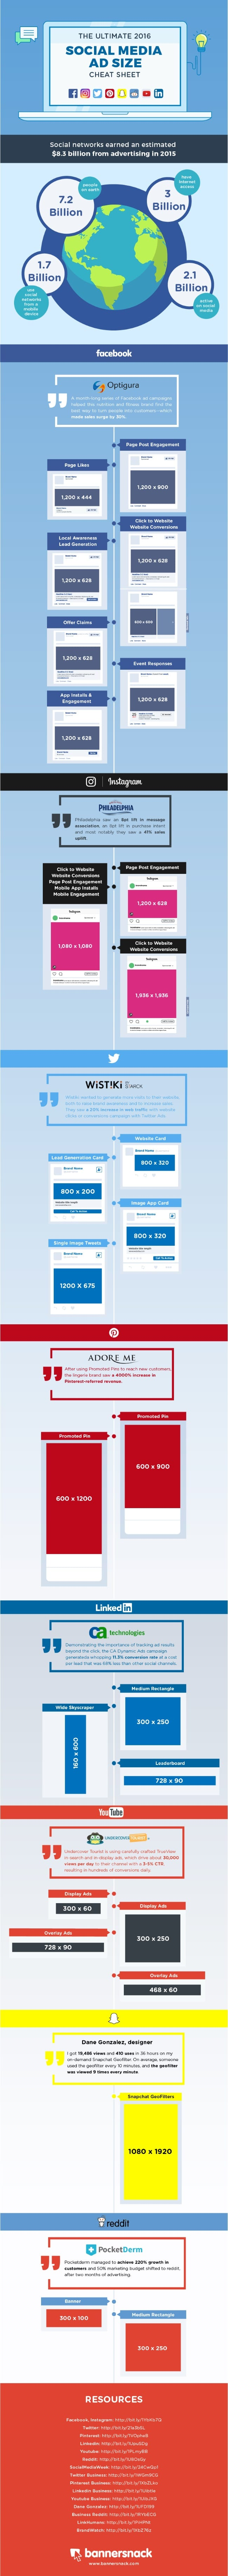 Cheat Sheet of Ad Sizes and Specs for Every Social Network